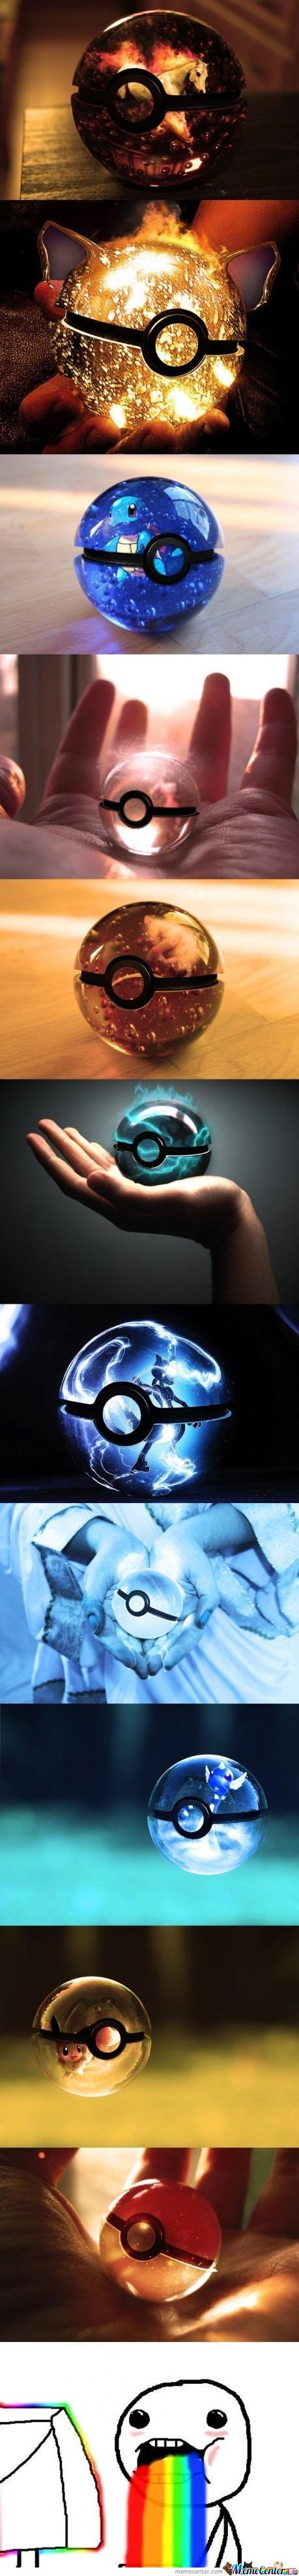 Just Pokeballs